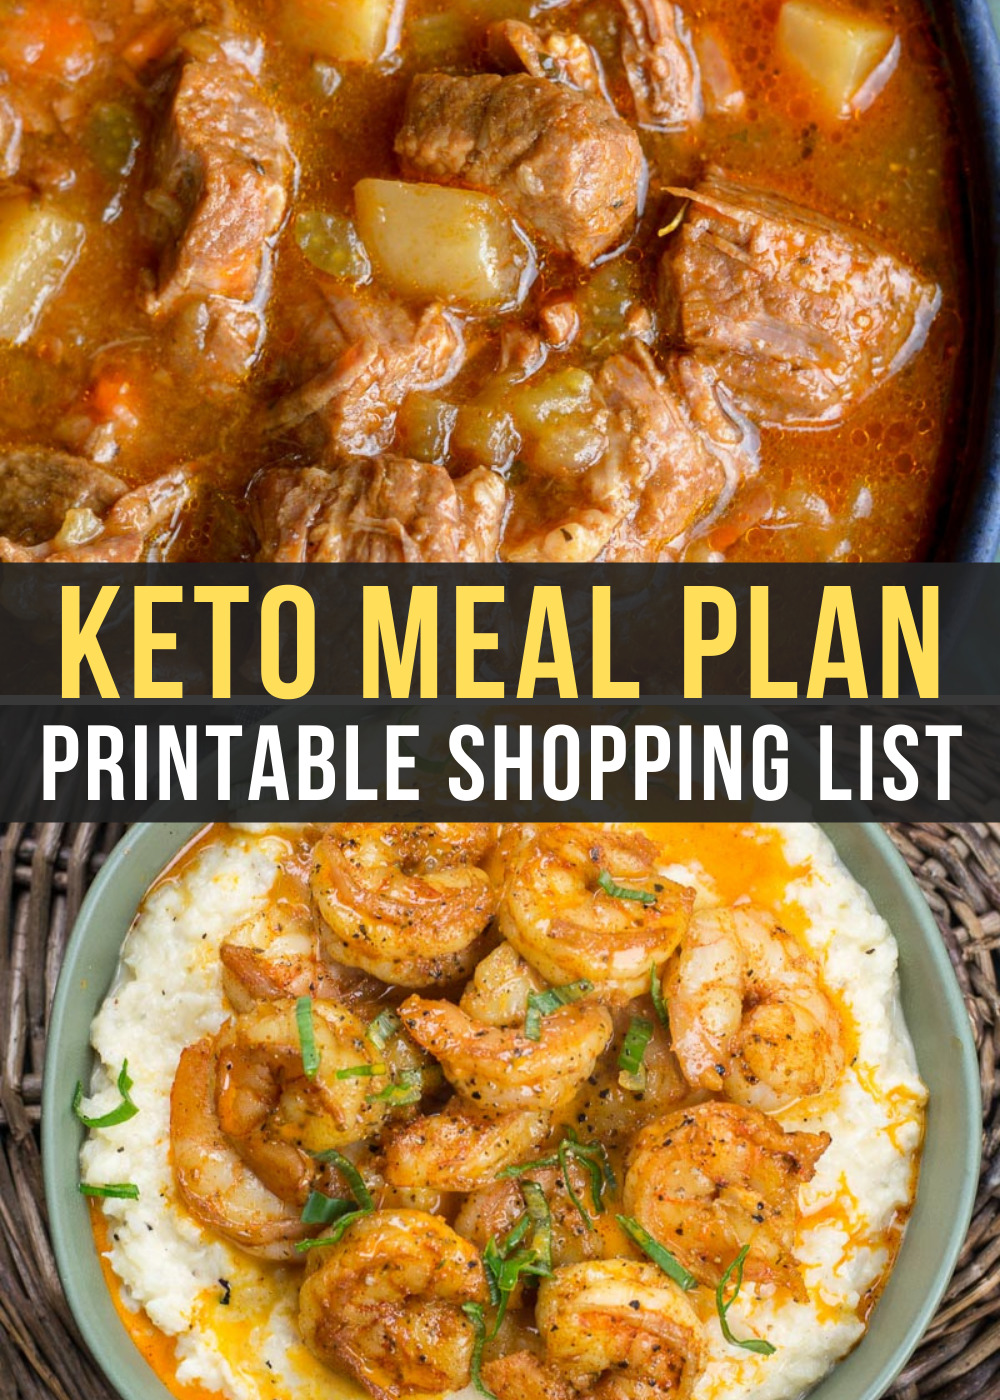 Week 19 of Easy Keto Meal Plan includes delicious low-carb dinners like Keto Beef Stew and Keto Shrimp and Grits!